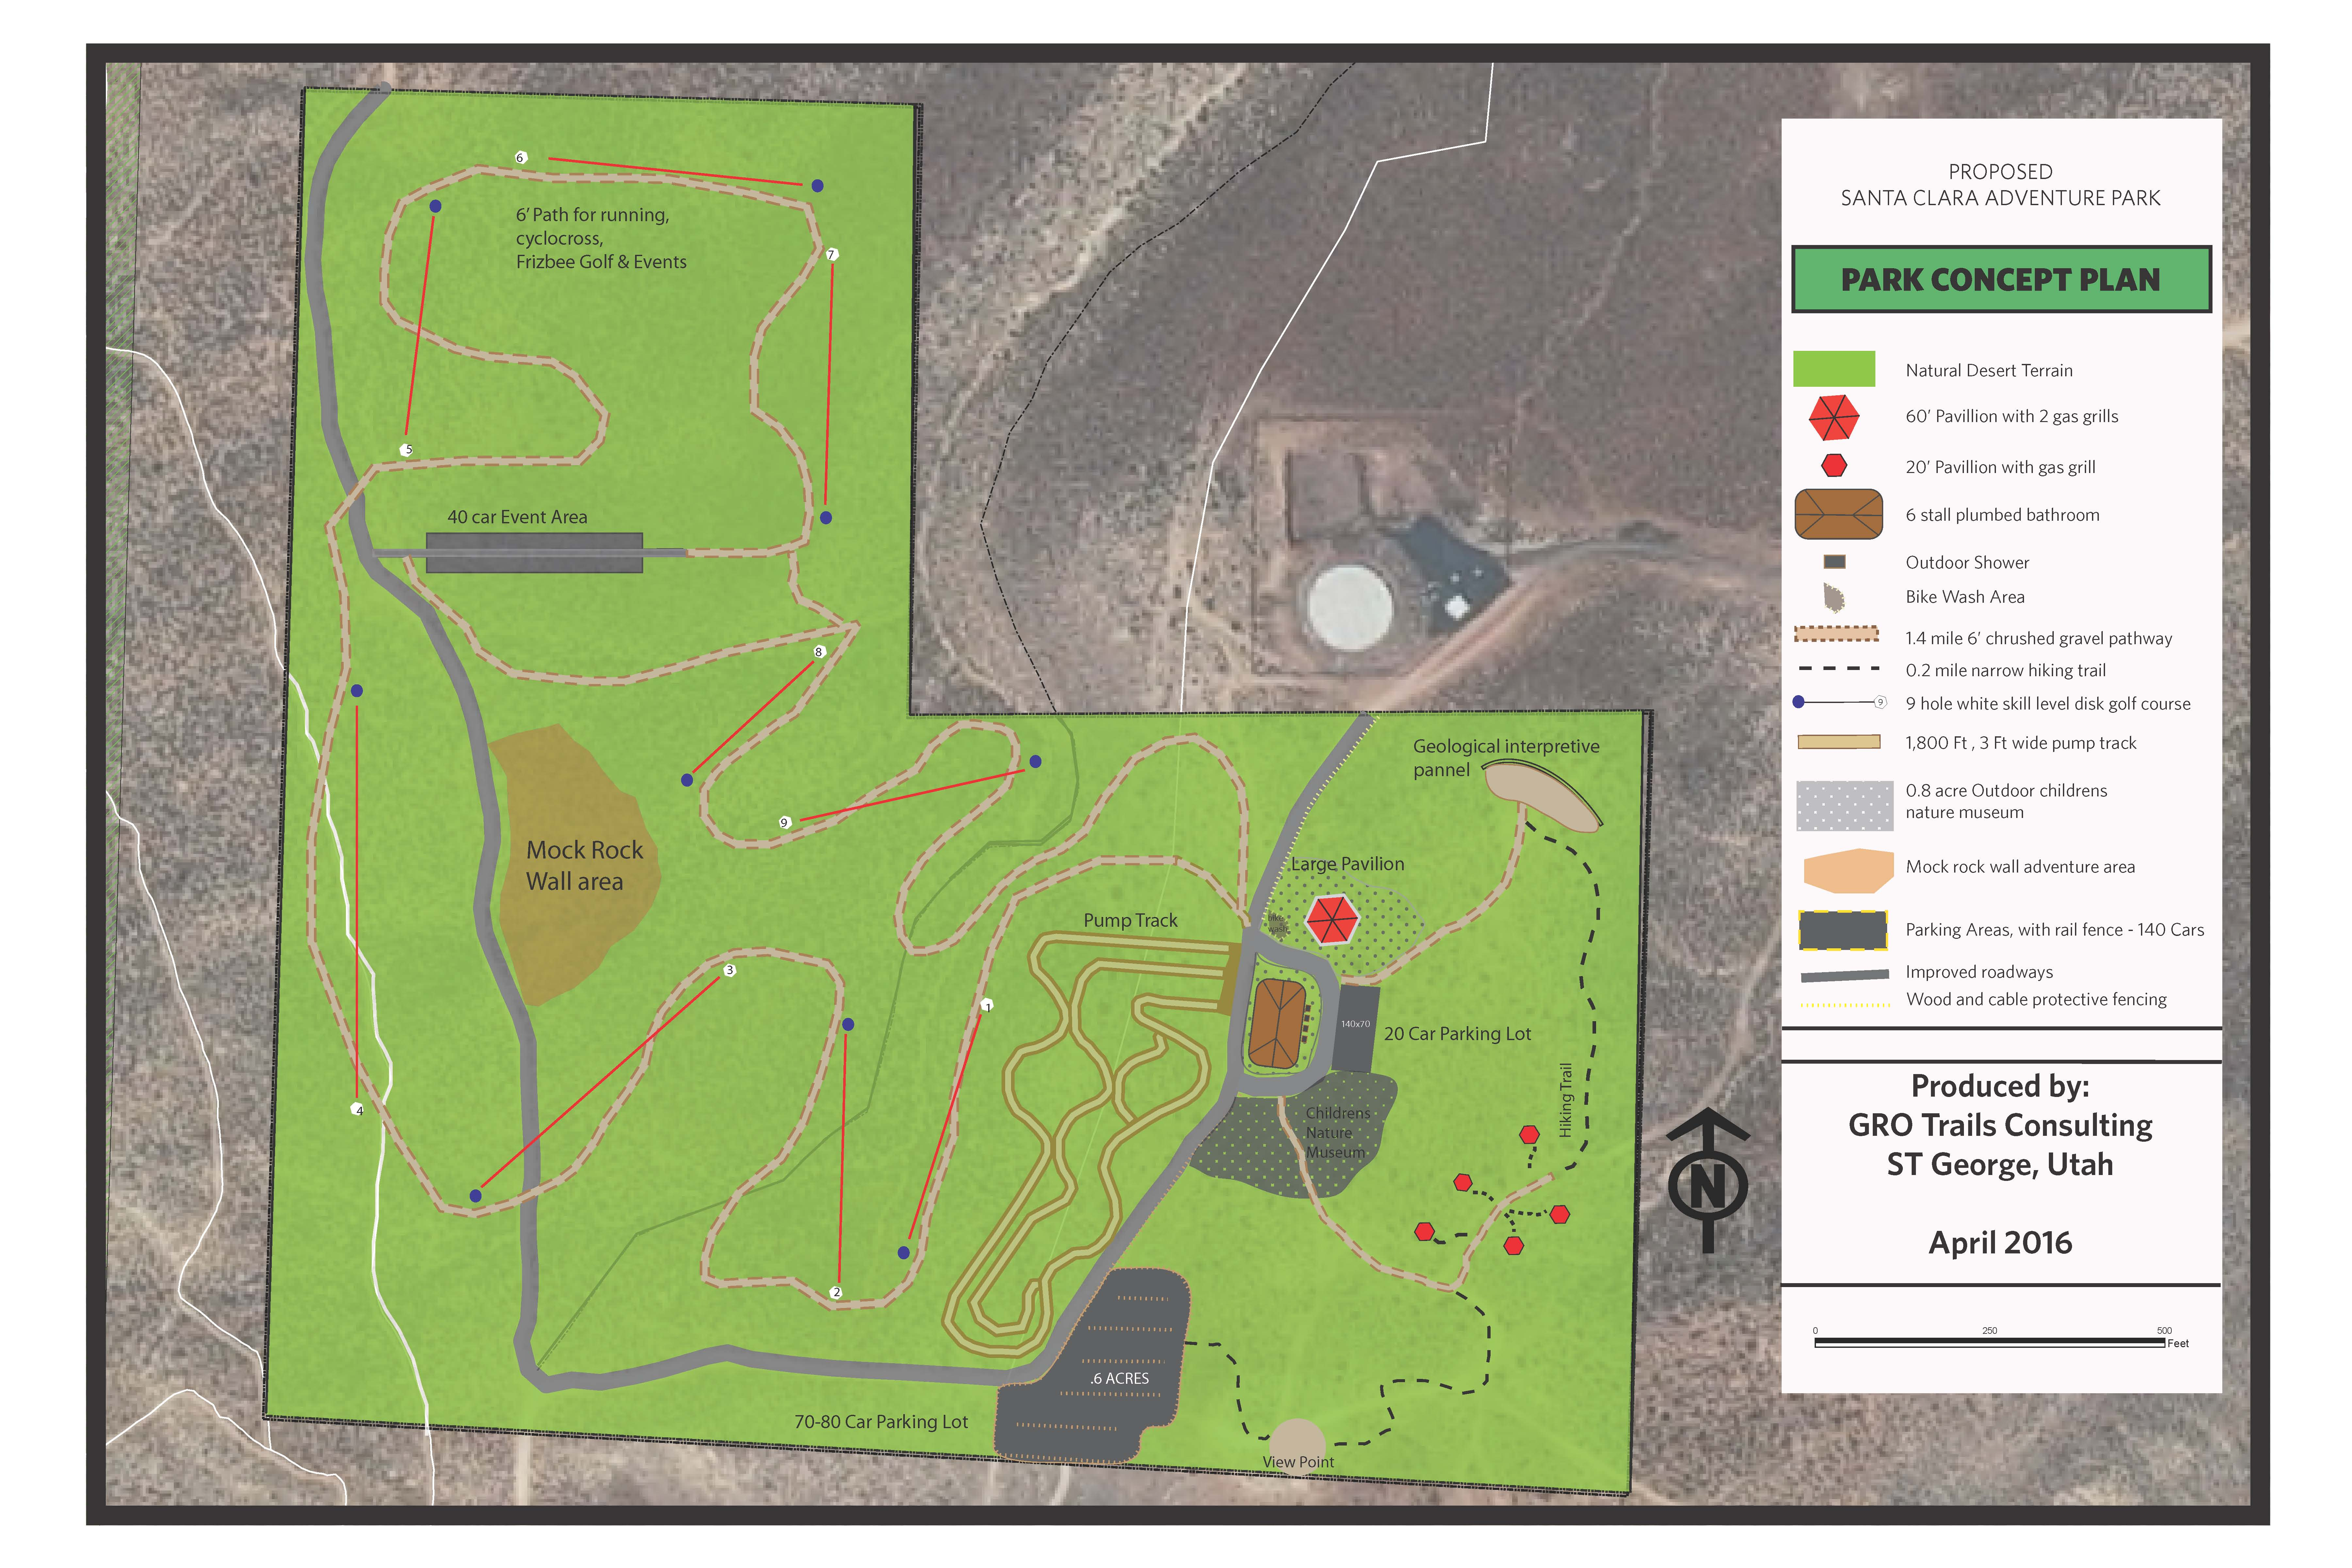 Concept plan for new outdoor sports park planned in the South Hills area of Santa Clara | Image courtesy of Santa Clara City, St. George News